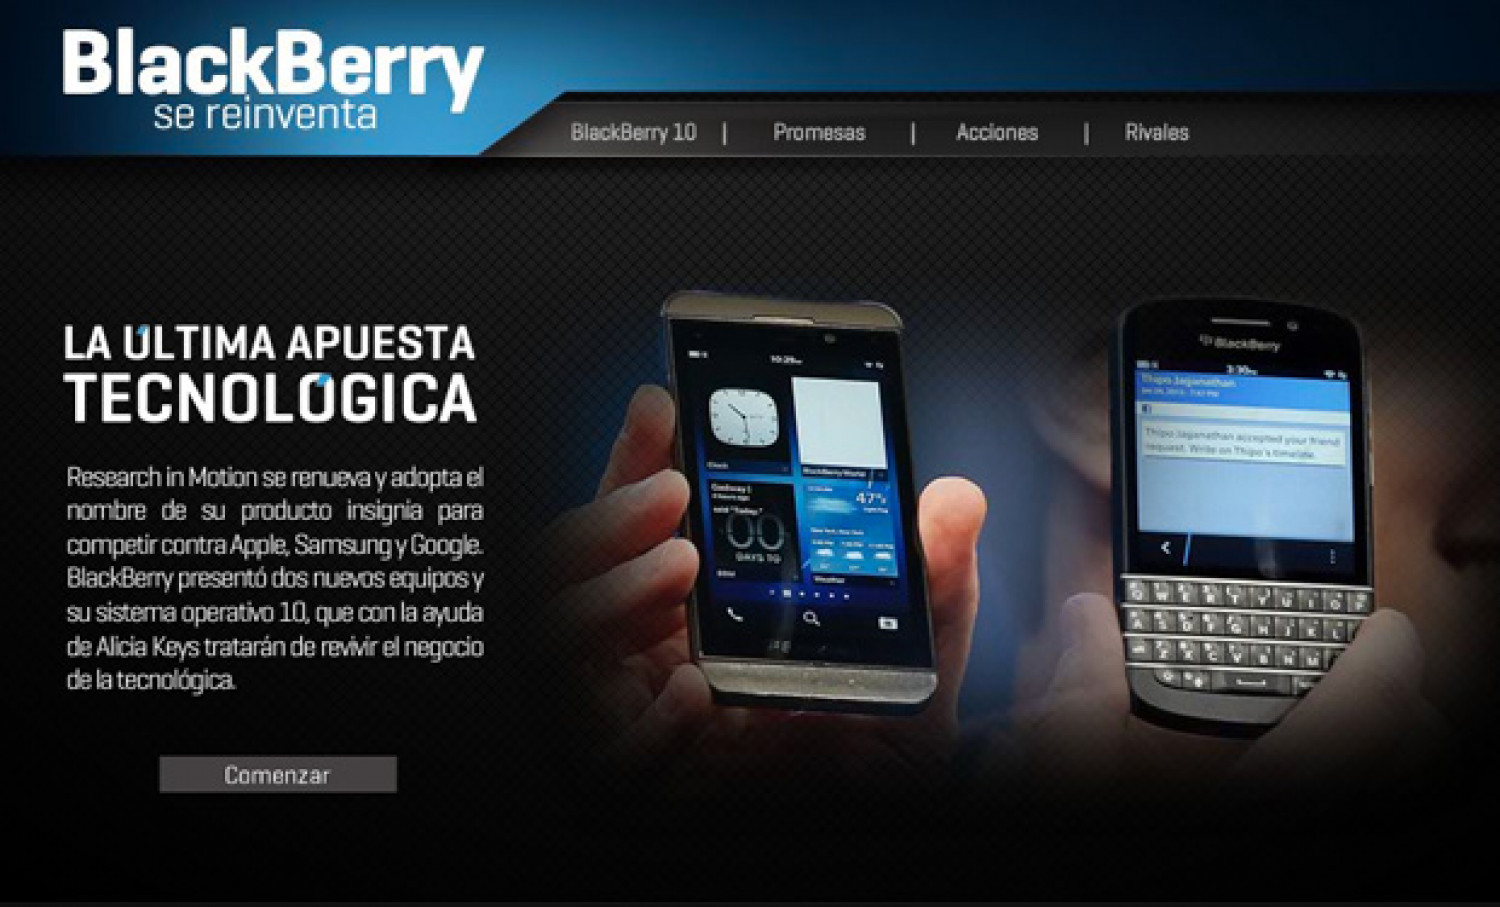 BlackBerry se reinventa Infographic